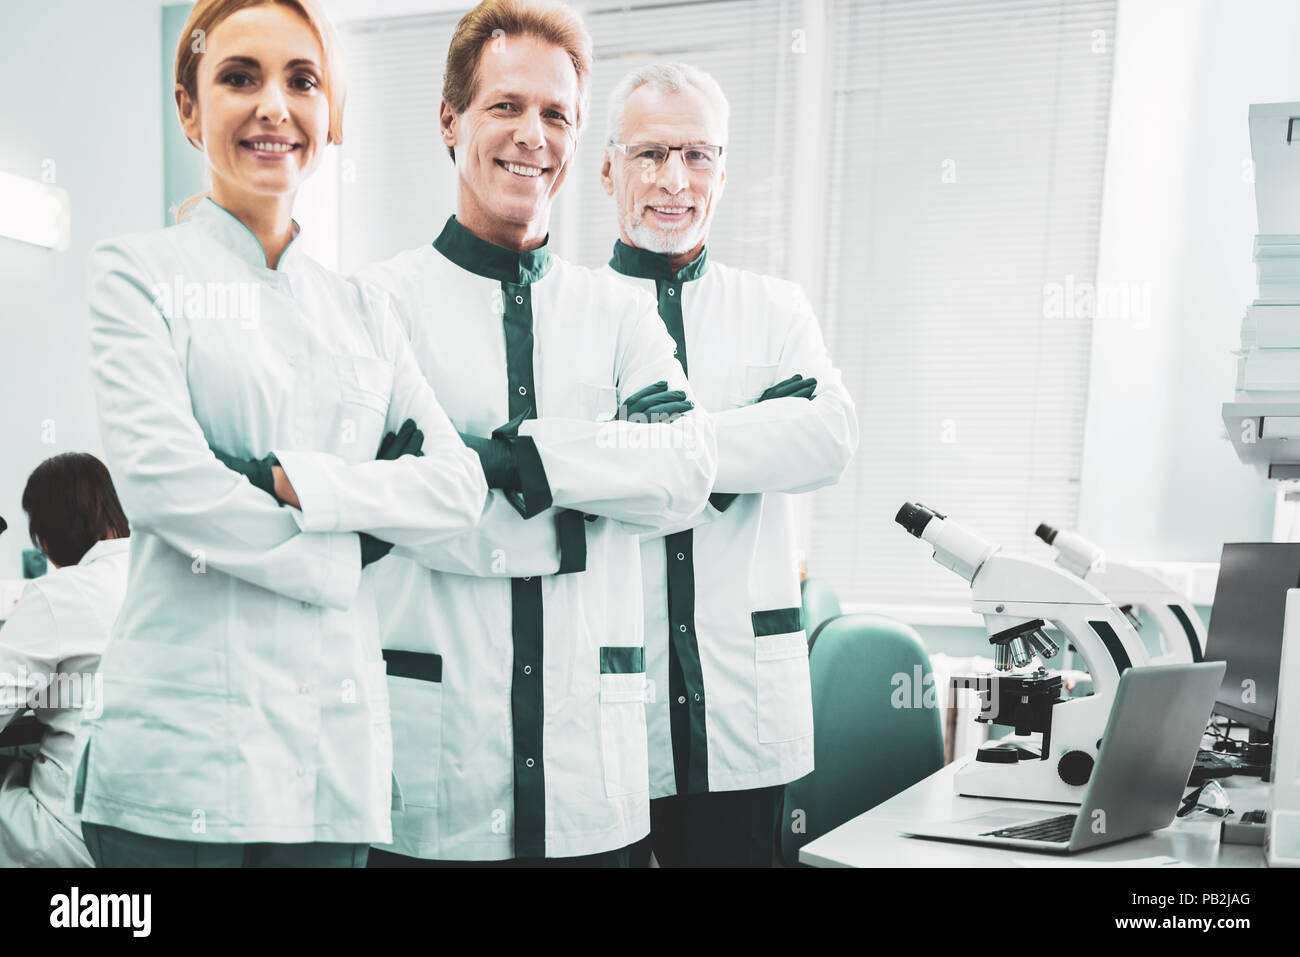 Biotechnologists feeling busy while planning new discovery - Stock Image